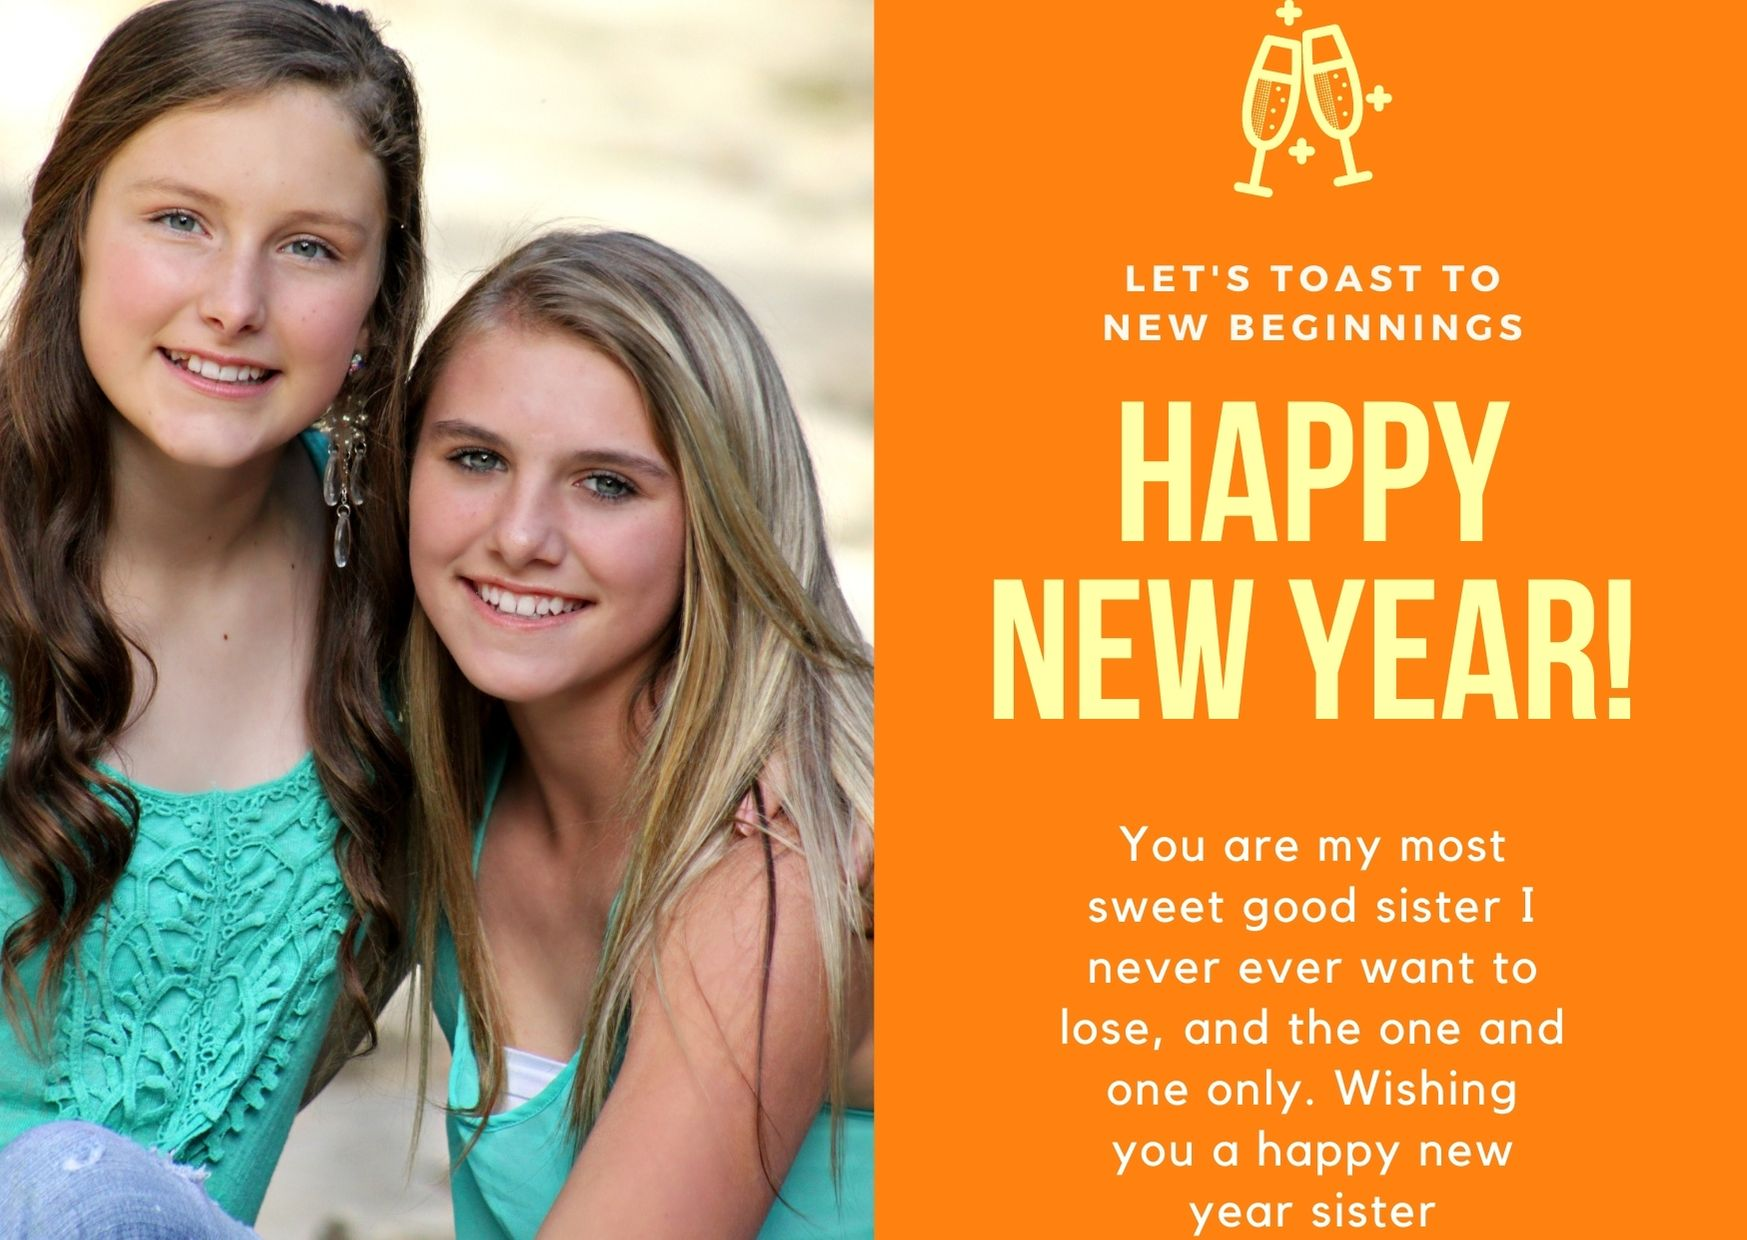 New Year Wishes To Sister From Sister